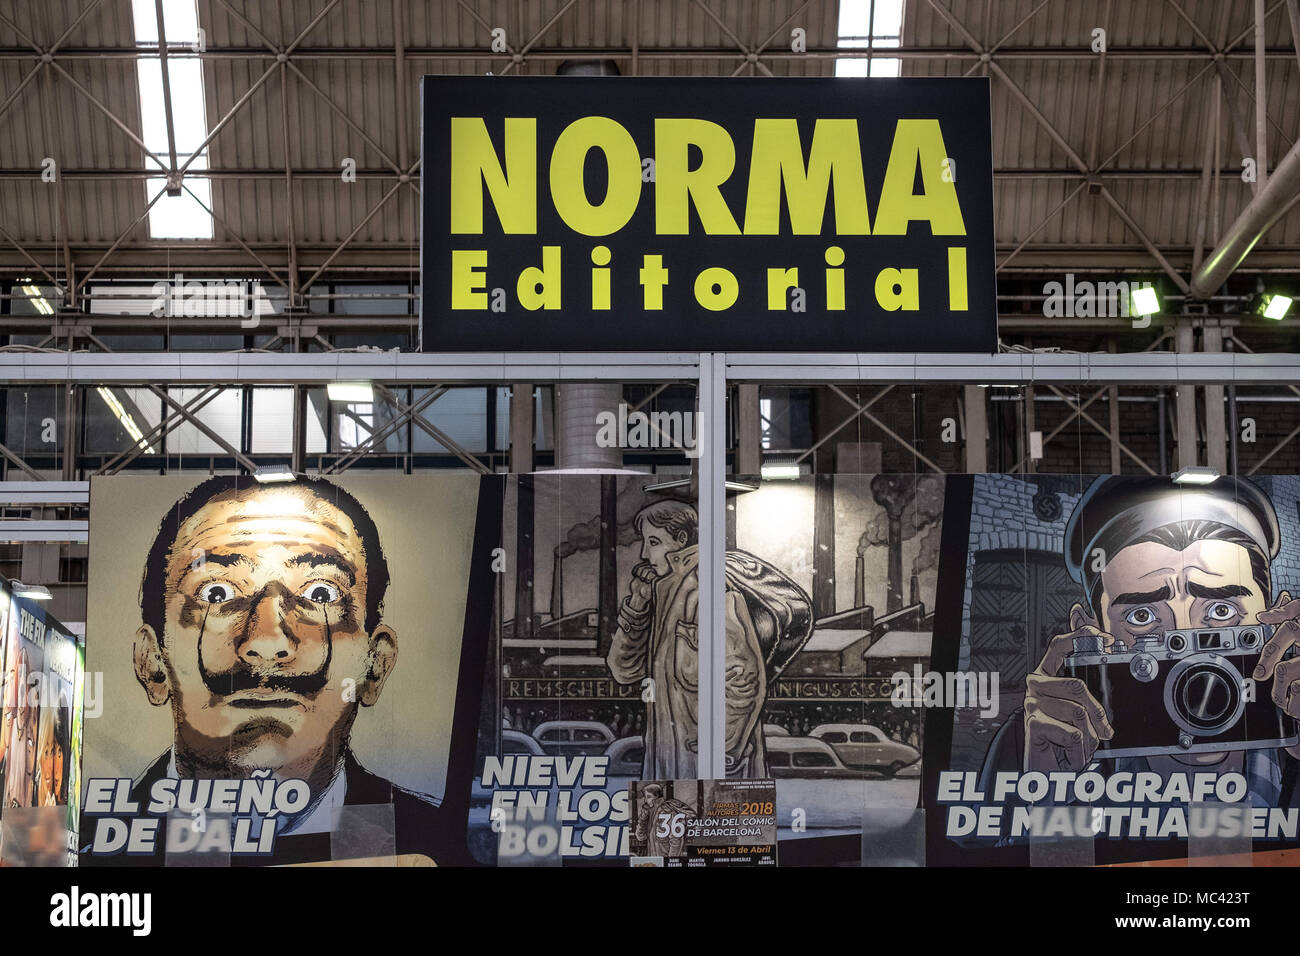 April 12, 2018 - Barcelona, Catalonia, Spain - Stand of Norma Editorial. Opening of the 36th Barcelona International Comic Fair from 12th-15th April 2018 in Fira Barcelona Montjuïc. (Credit Image: © Paco Freire/SOPA Images via ZUMA Wire) Stock Photo